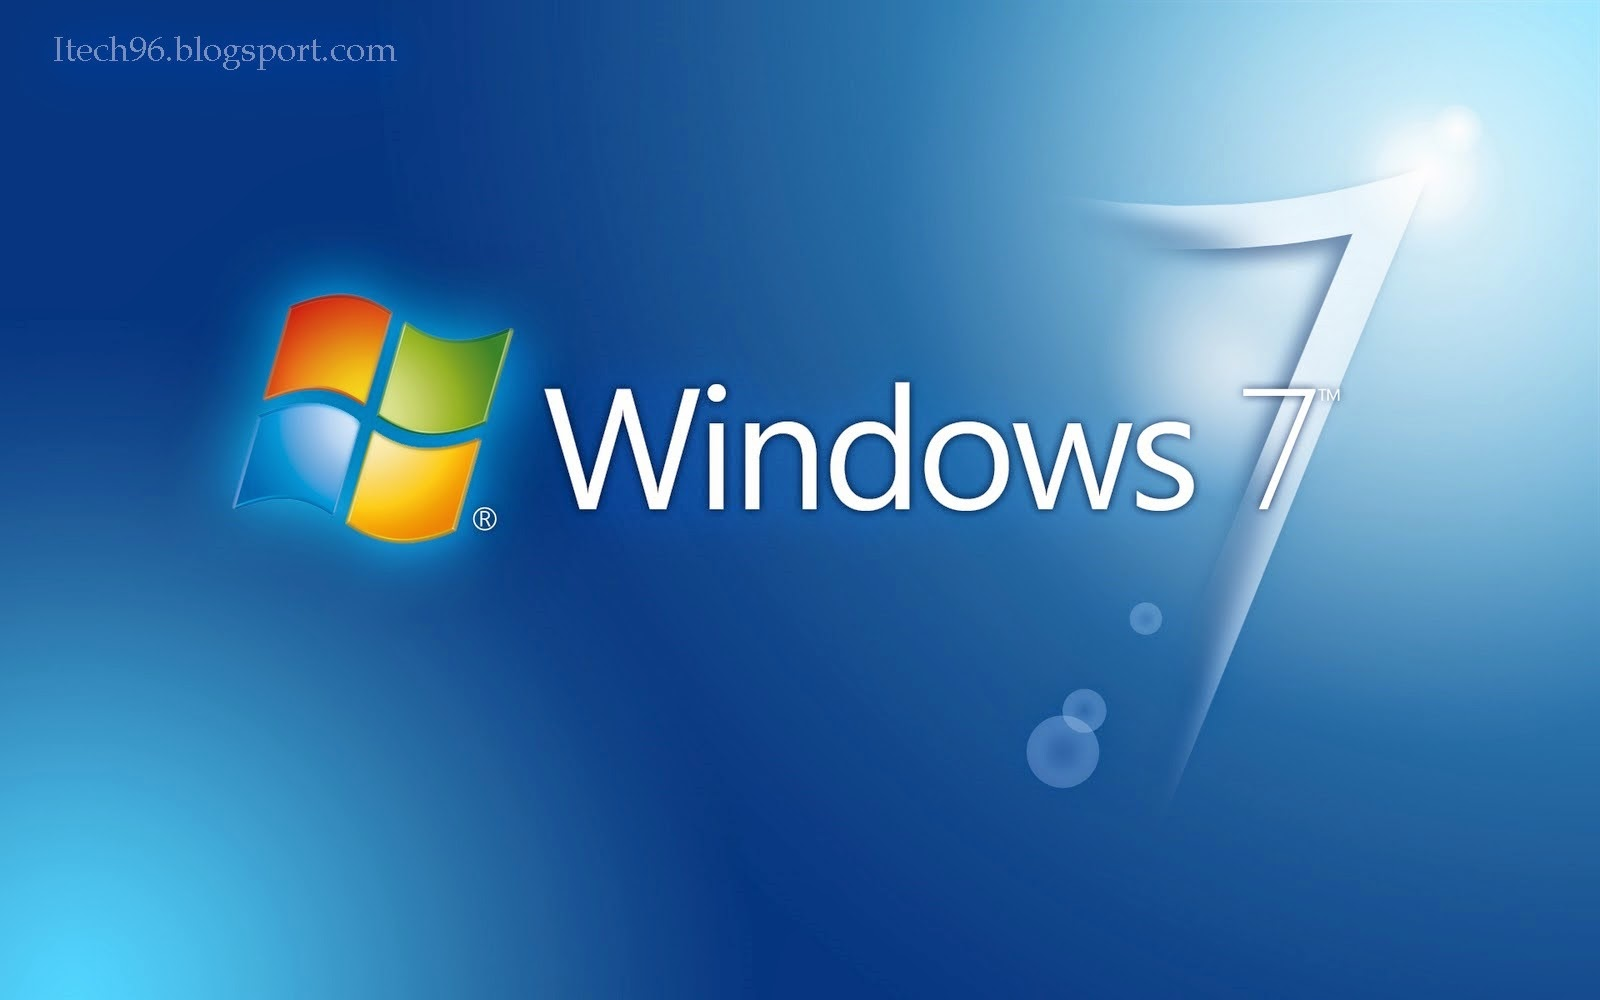 Windows vista sp1 32 bit free download